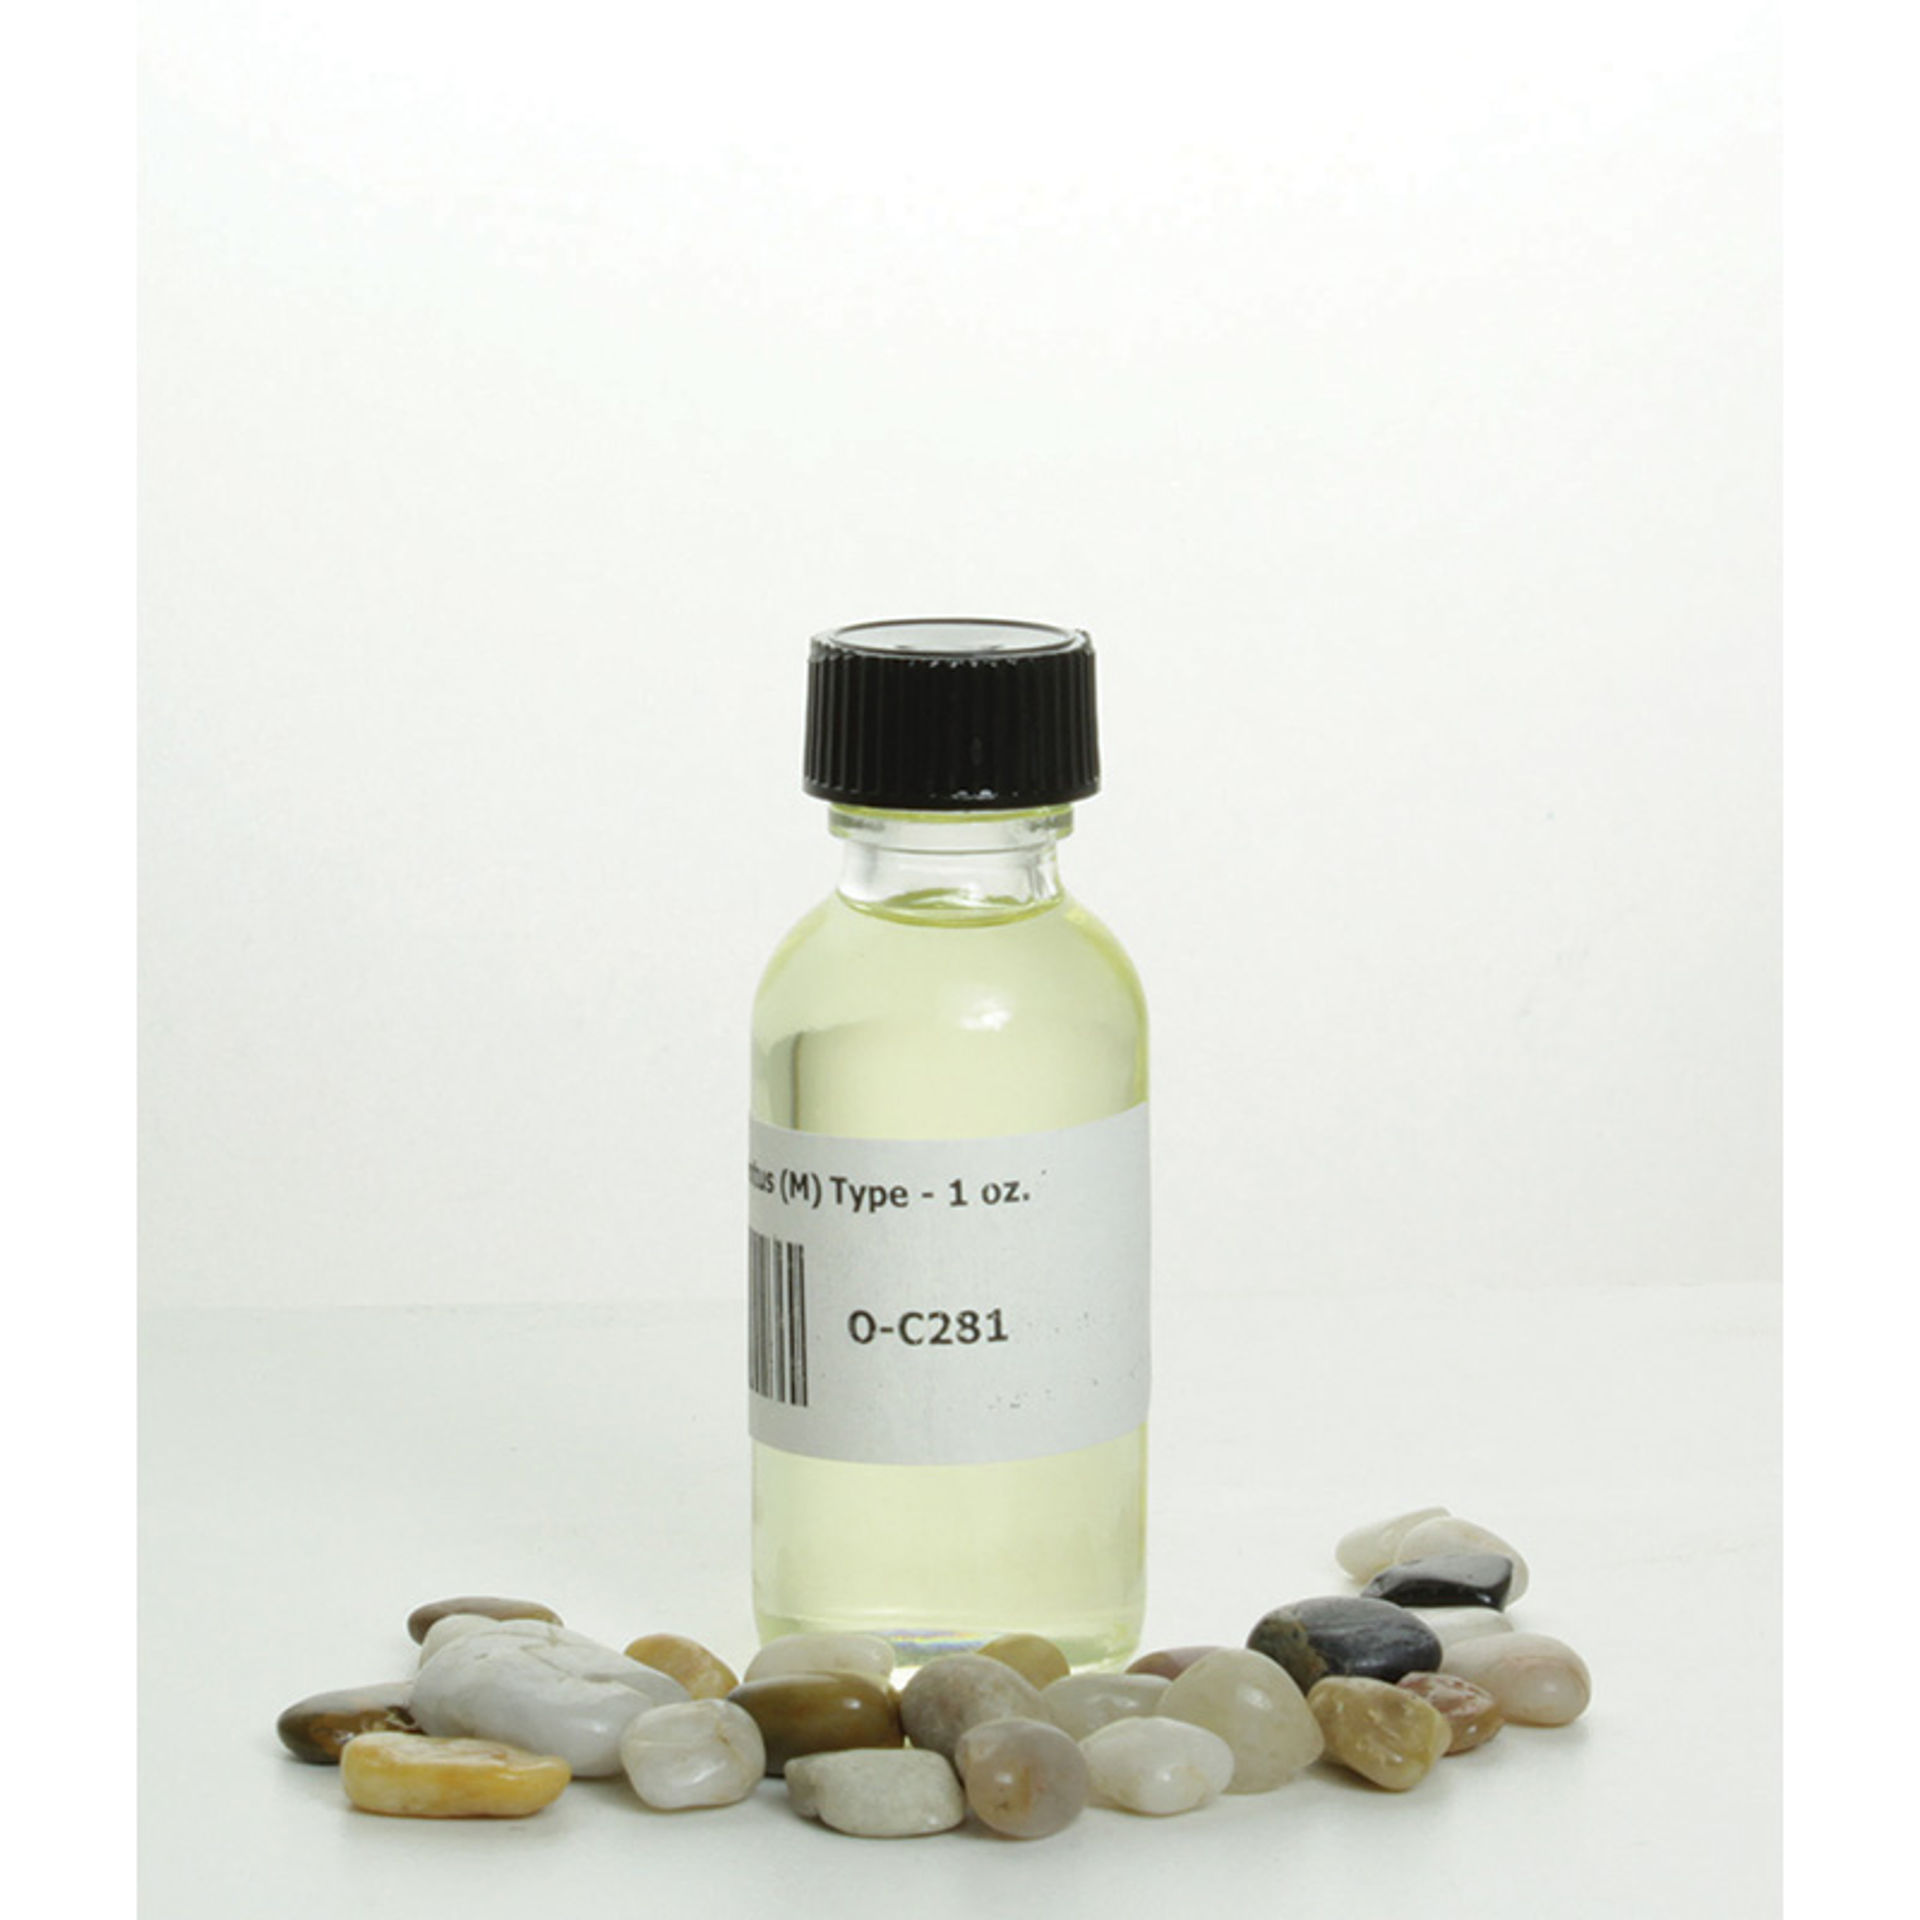 Picture of Creed: Aventus (M) Type - 1 oz.